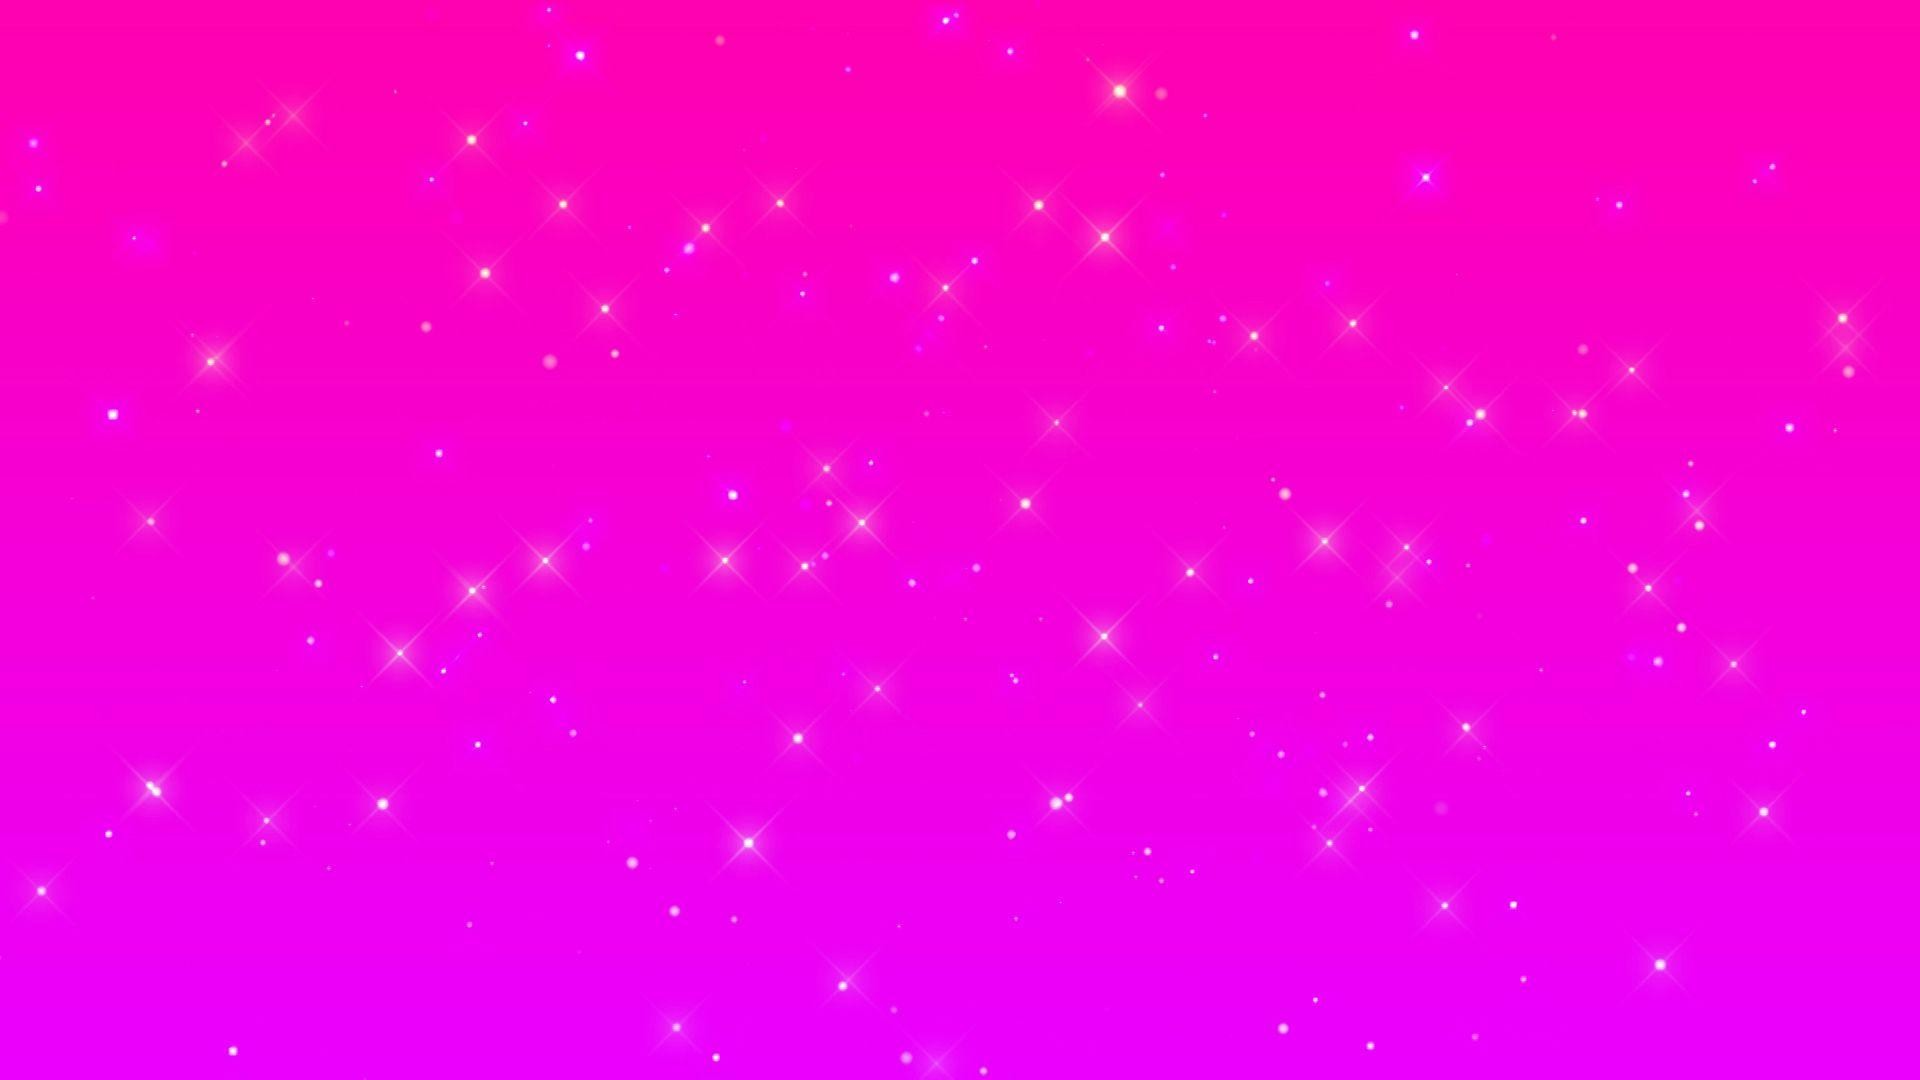 Wallpapers For > Plain Pink Backgrounds